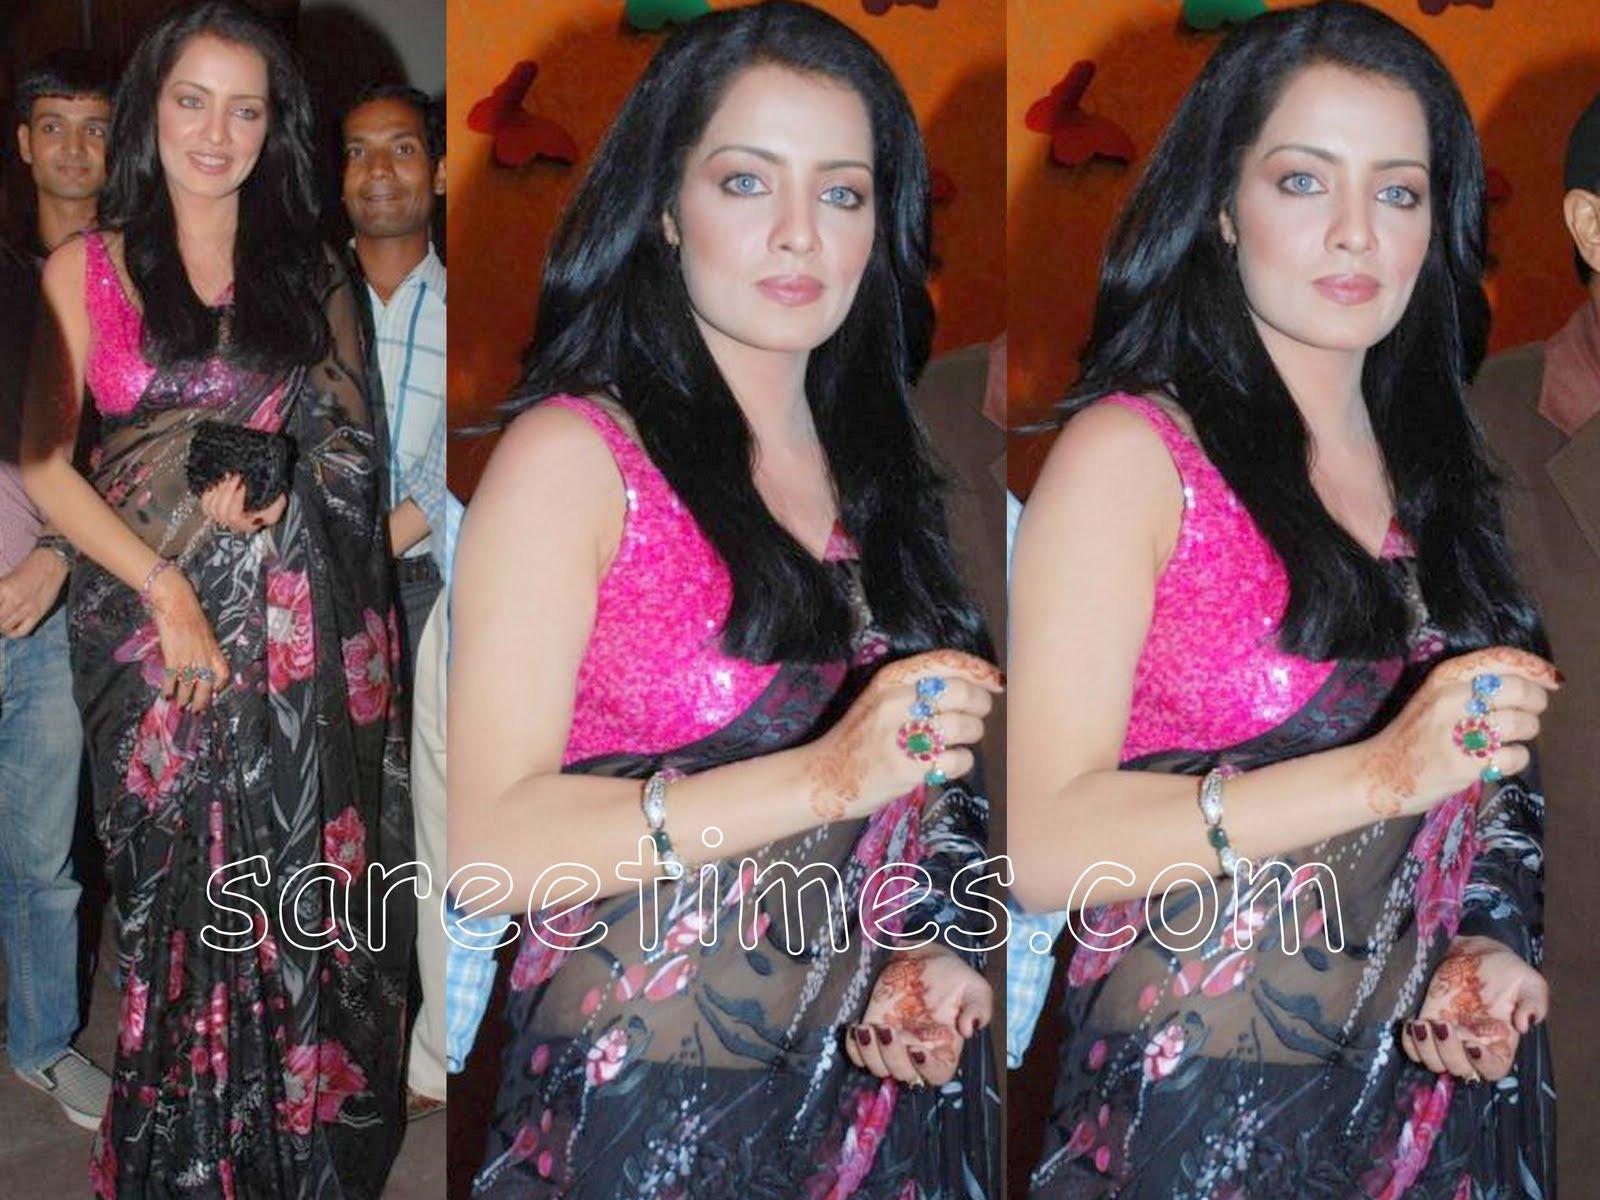 http://2.bp.blogspot.com/_58_qEOwiSDY/S832guT4r3I/AAAAAAAACsg/cDkhIEeZ8u0/s1600/Celina-Jaitely-Black-saree-Mumbai-International-Queen-Film-Festival.jpg